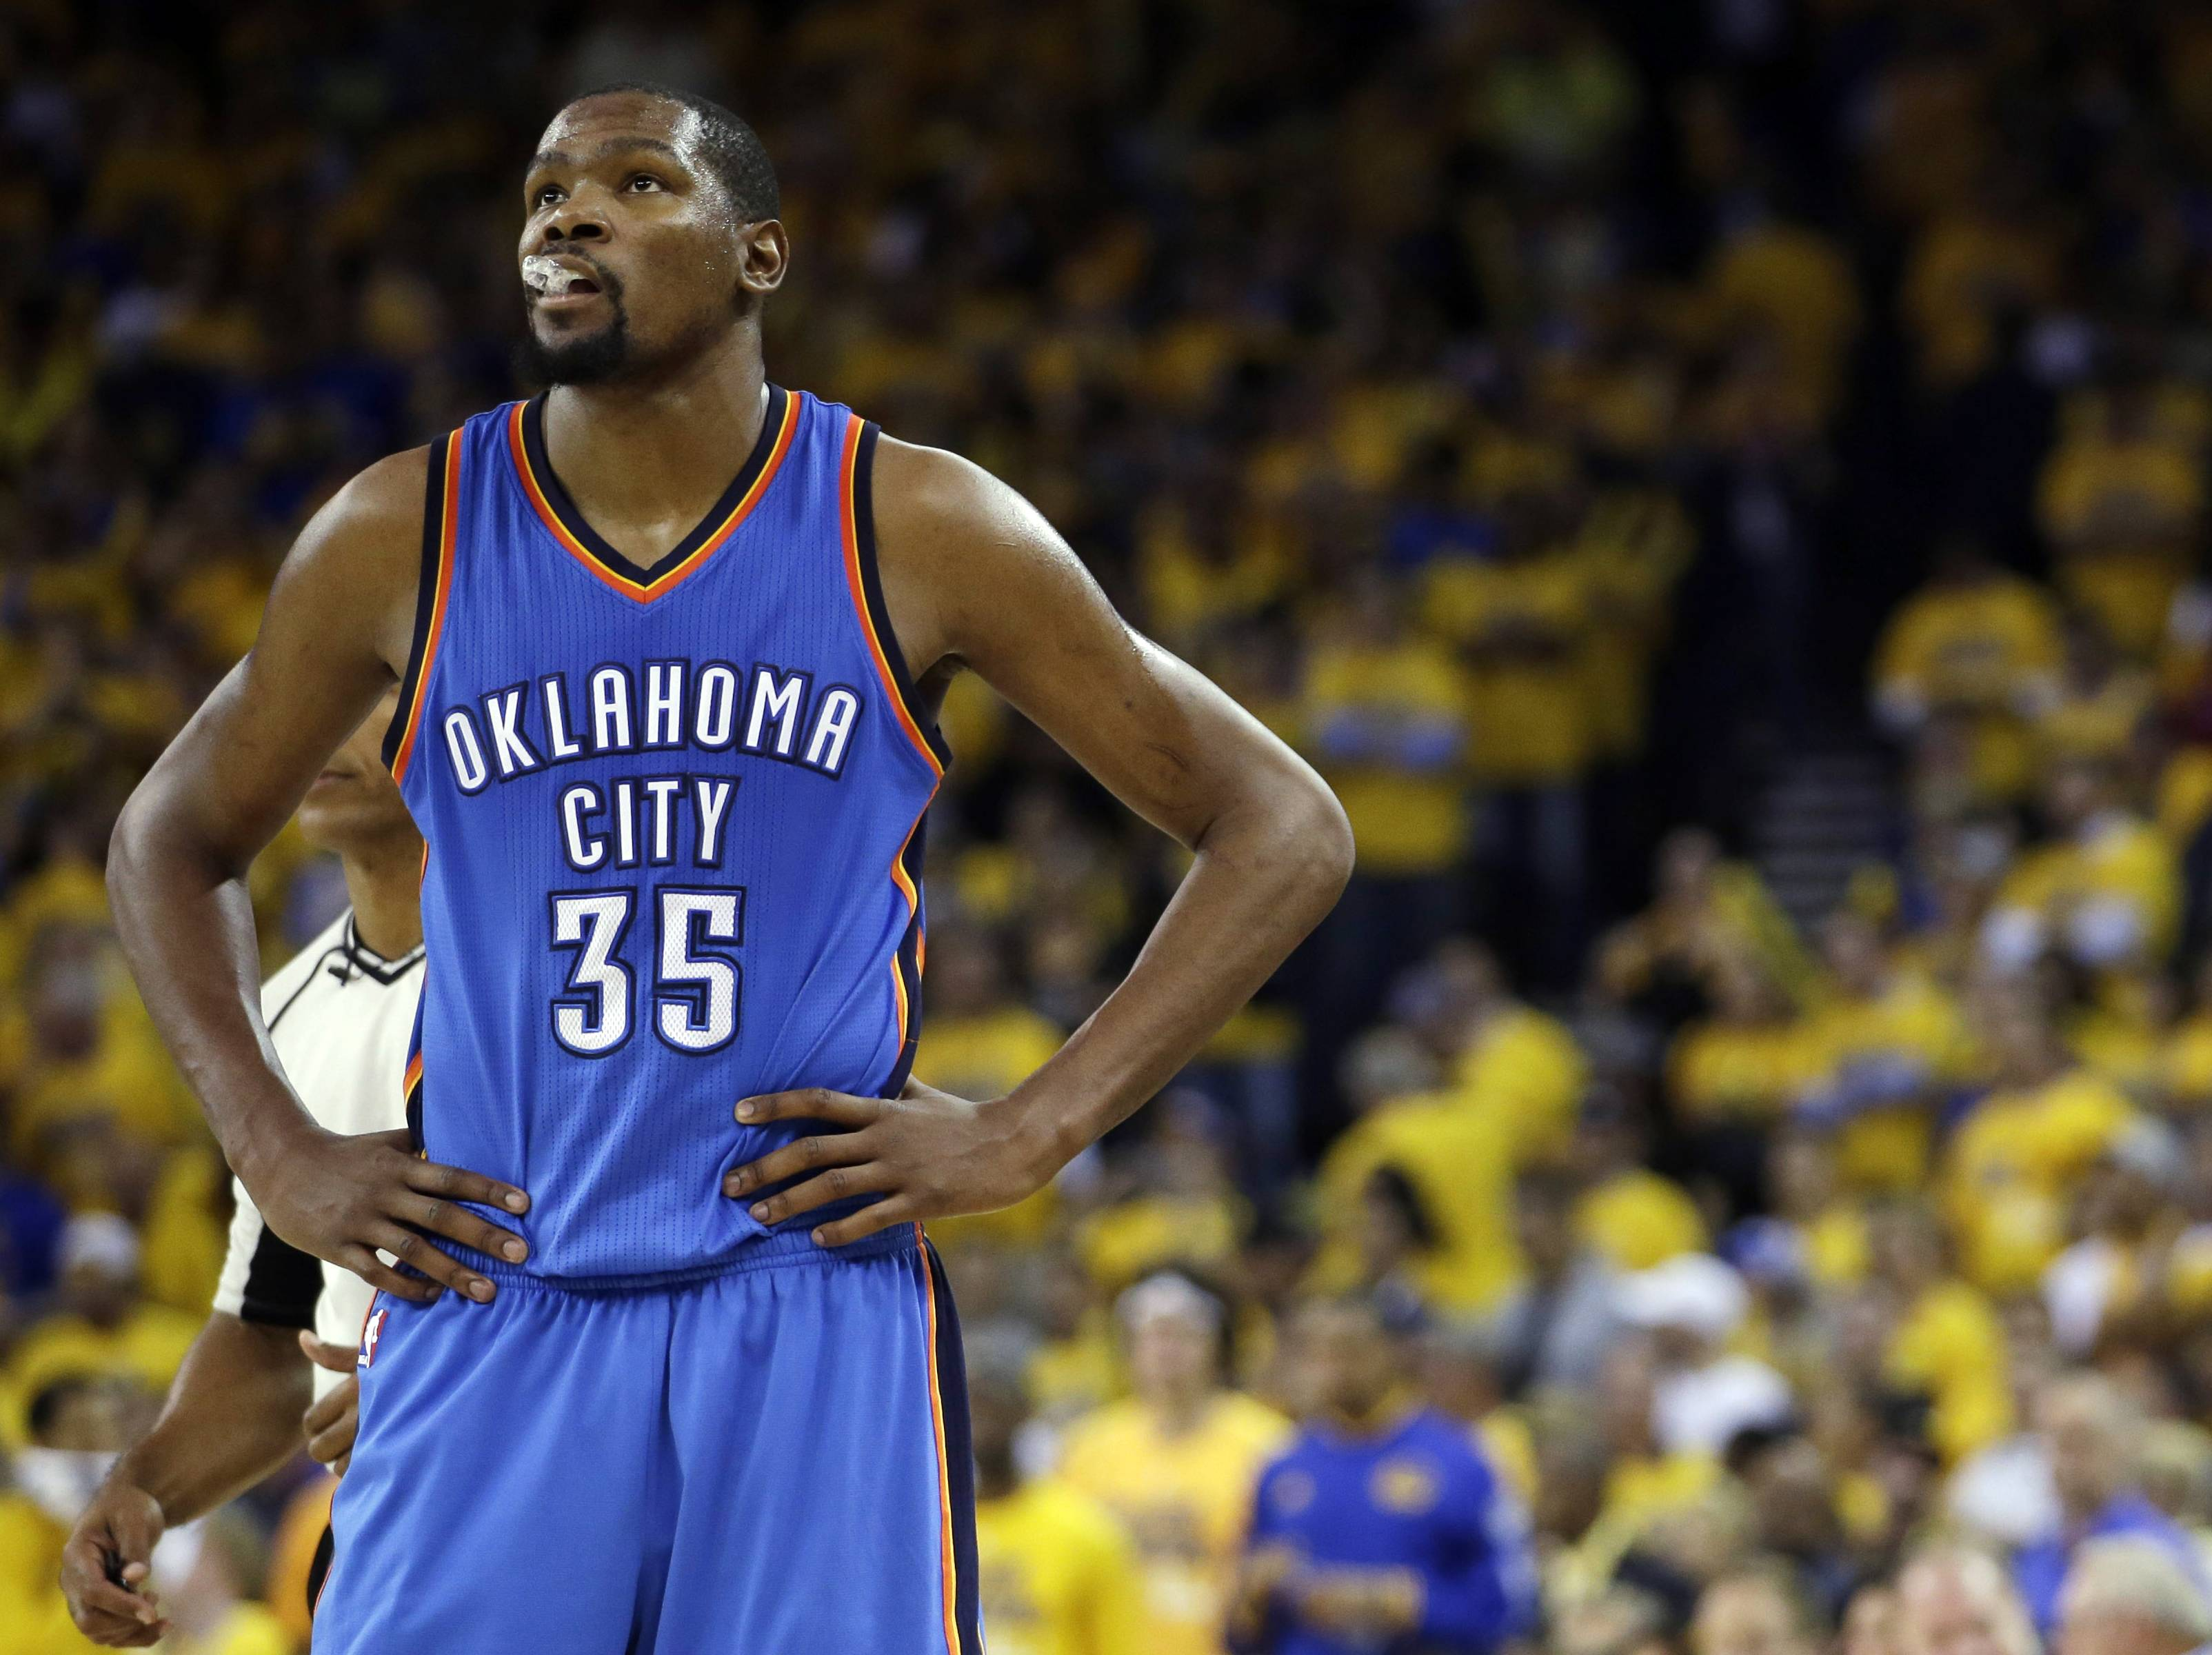 If Kevin Durant wants to join the Clippers, it most likely would be in a sign-and-trade for Blake Griffin.